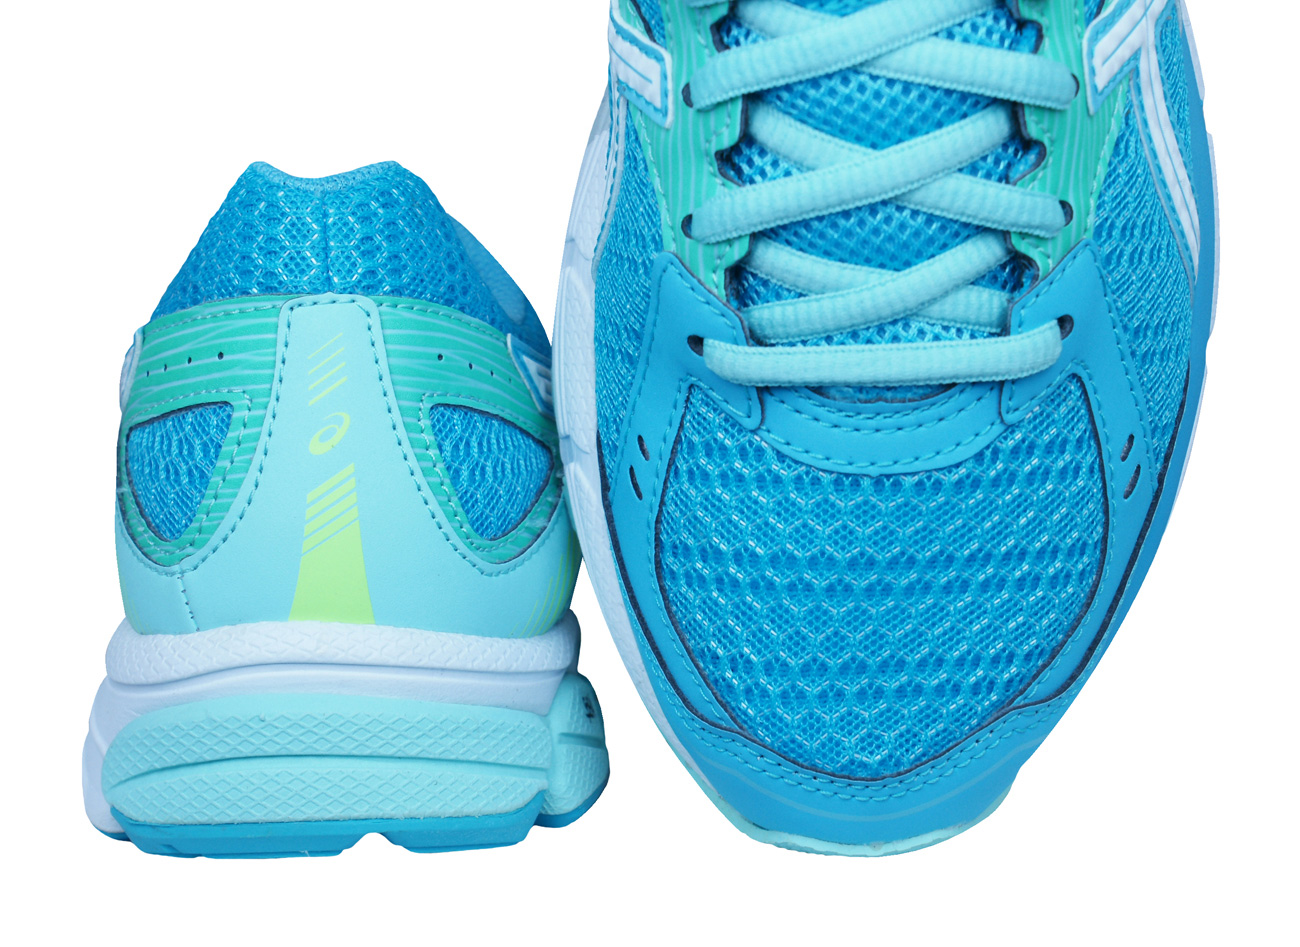 Asics 14821 Gel Chaussures Innovate 7 - Chaussures Chaussures/ Chaussures de course Femmes Bleu chez 54a7cd9 - resepmasakannusantara.website